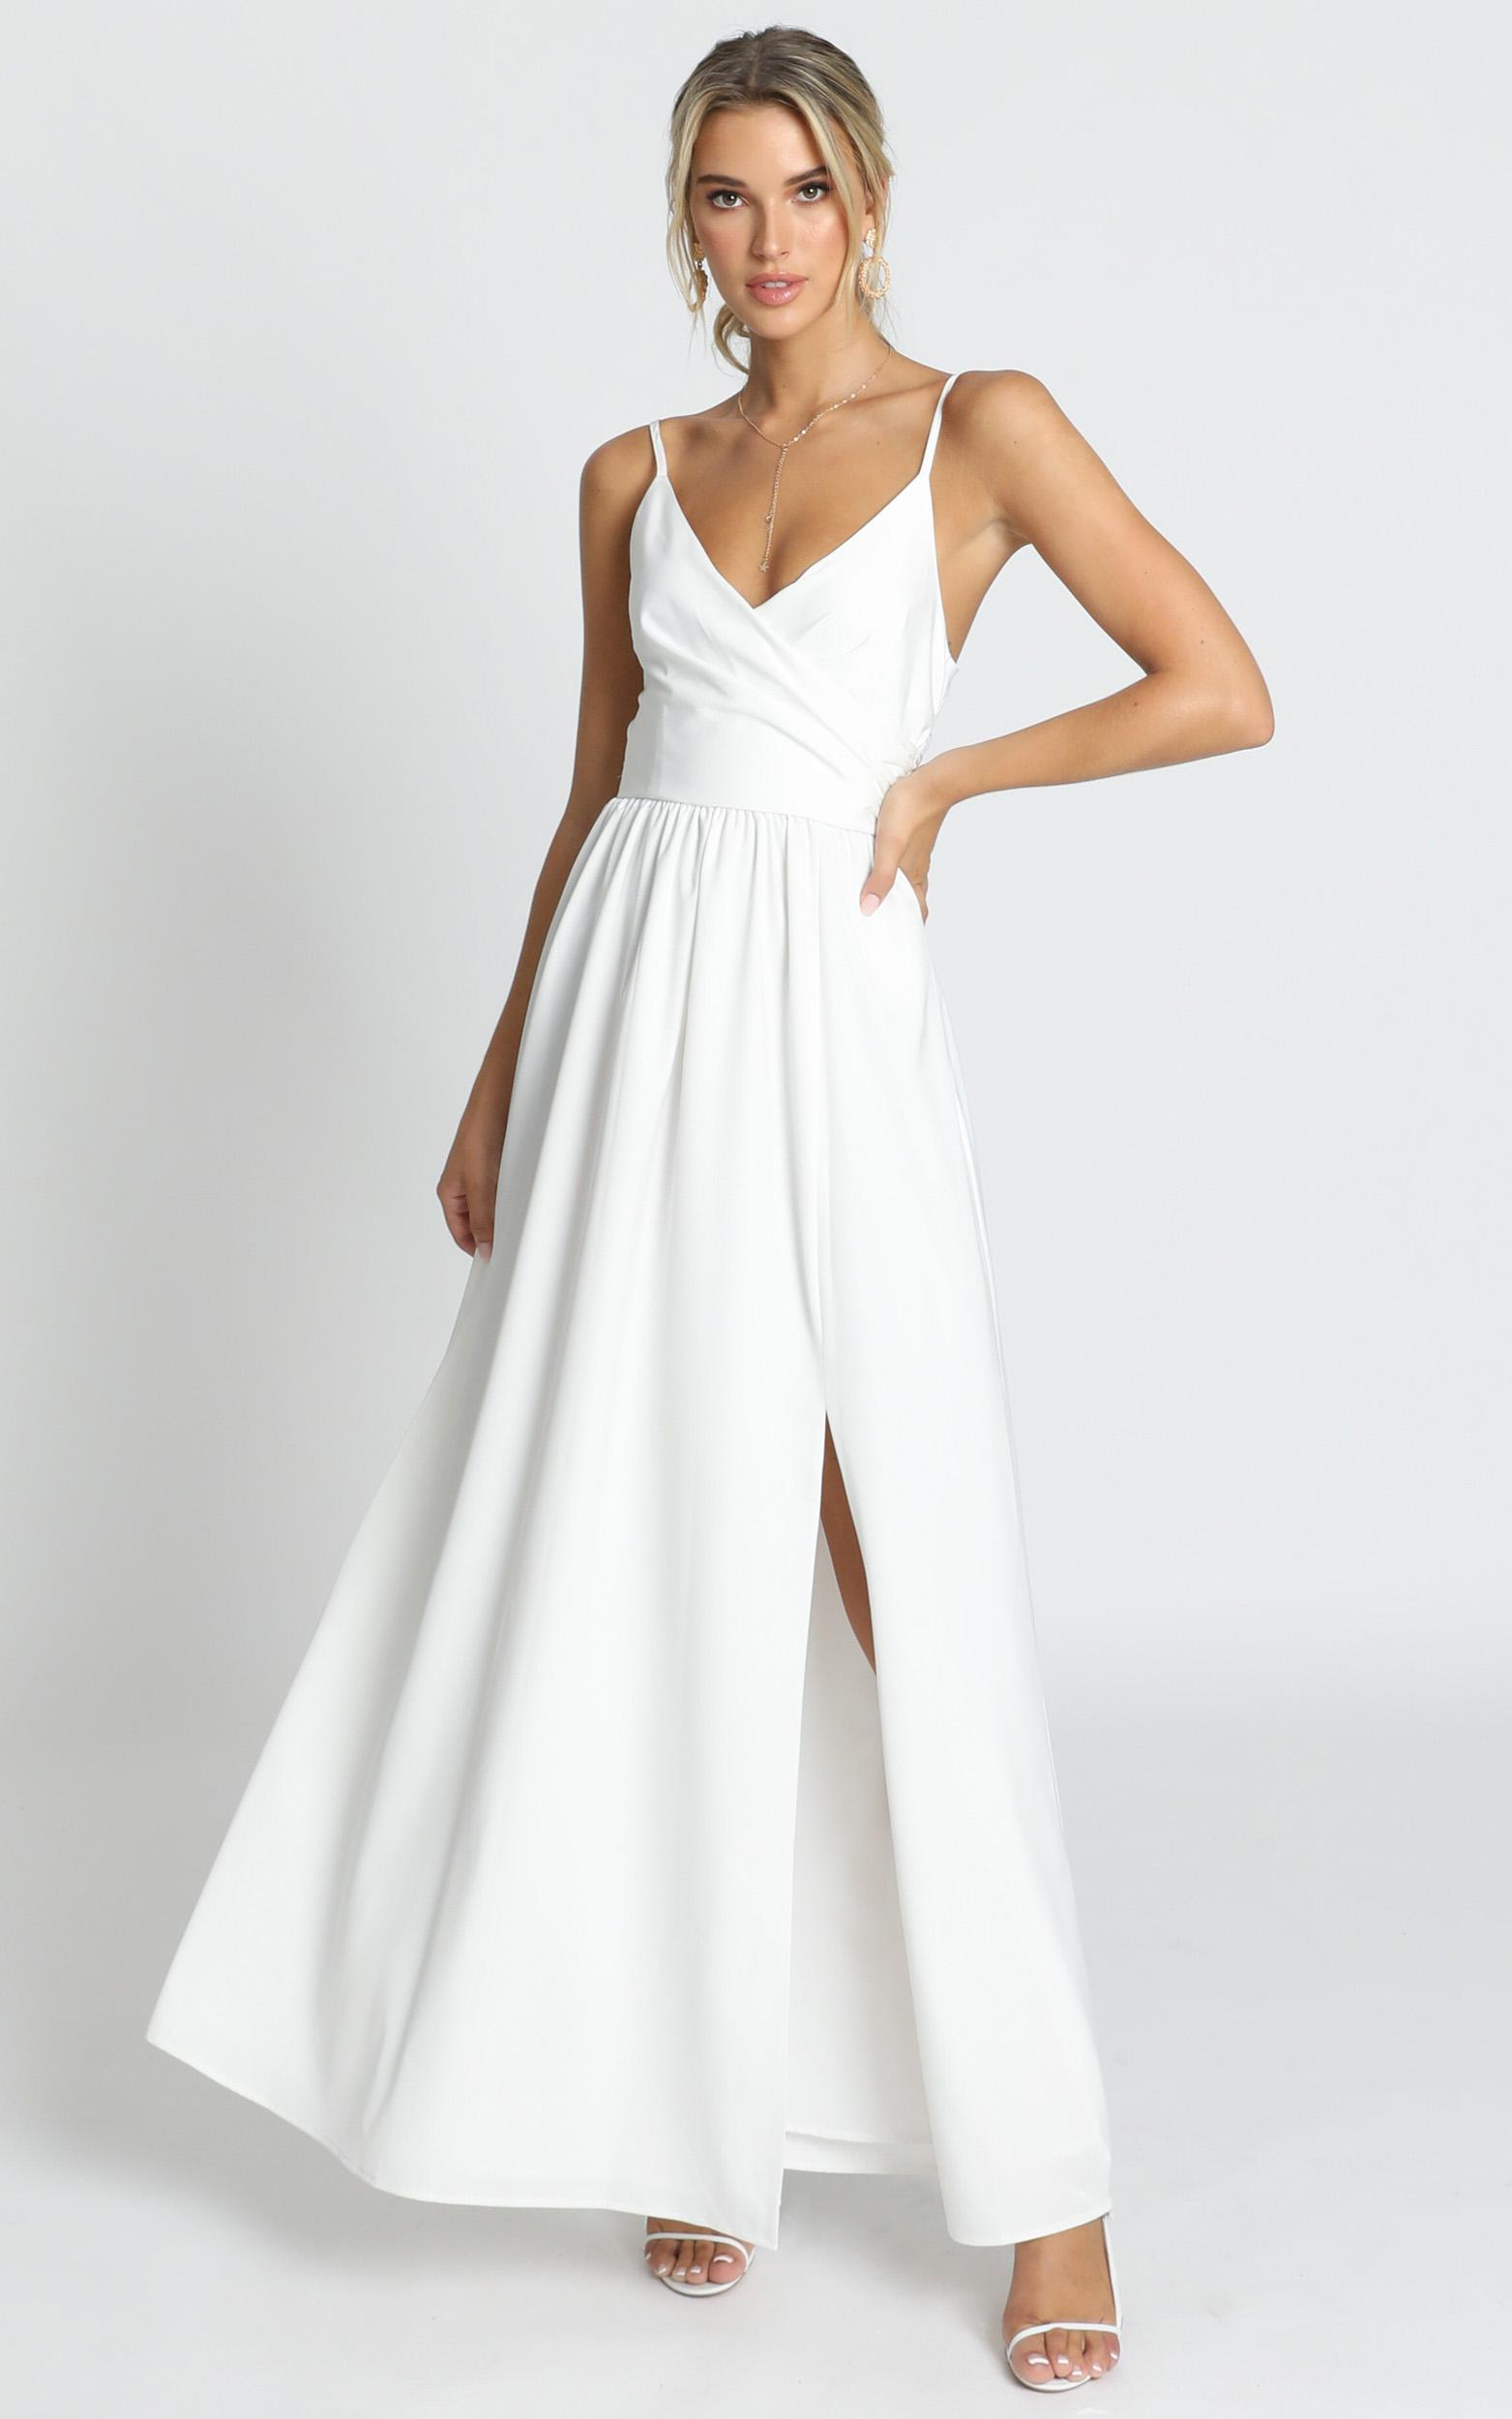 Revolve Around Me Dress in White - 14, WHT7, hi-res image number null